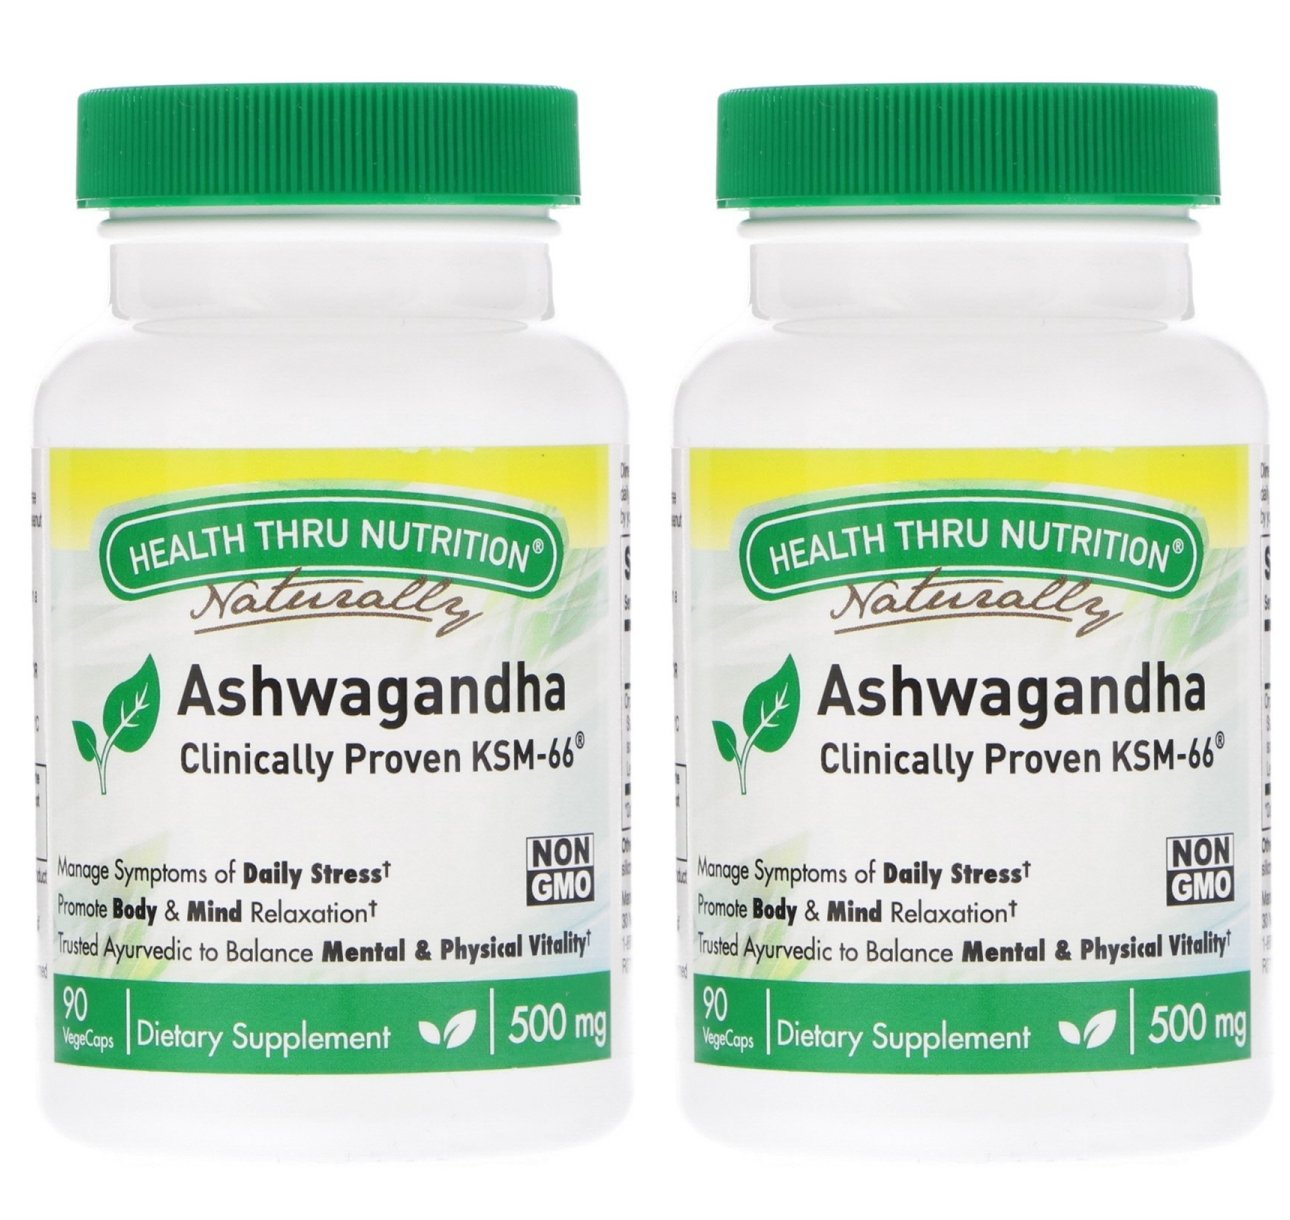 Health Thru Nutrition Organics Ashwagandha 500mg (Pack of 2) Reduce Stress and Anxiety, Enhance Memory and Cognition, Increase Endurance and Strength and Improve Sexual Function, 90 Tablets Each by Health Thru Nutrition Organics